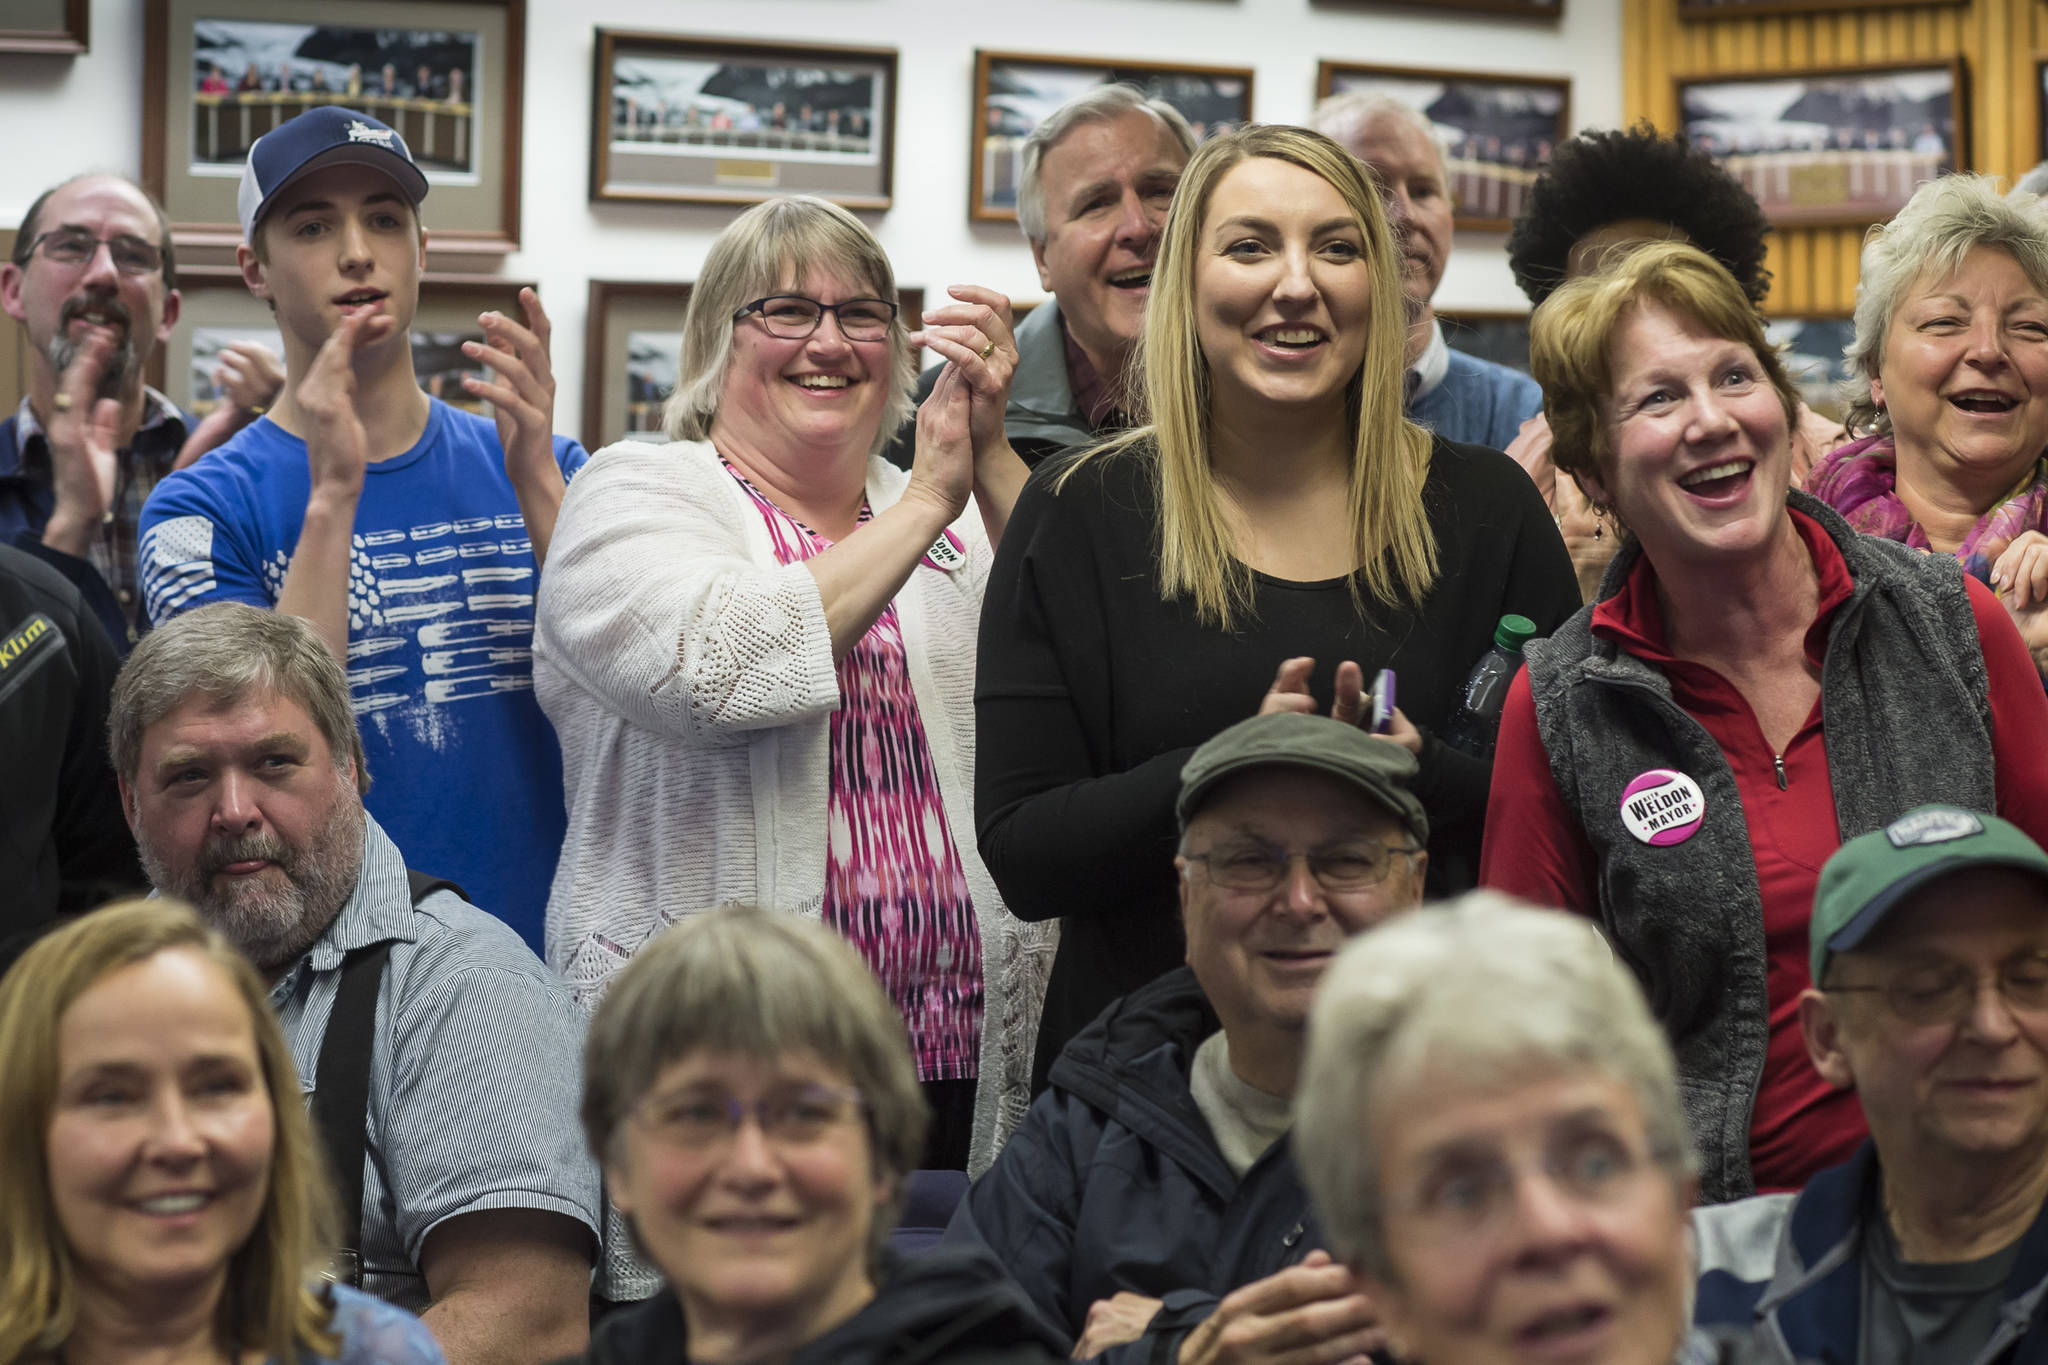 In this Empire file photo, then mayoral candidate Beth Weldon, with family and friends, react as they watch Election results come in at the Assembly chambers on Tuesday, Oct. 2, 2018. (Michael Penn | Juneau Empire File)